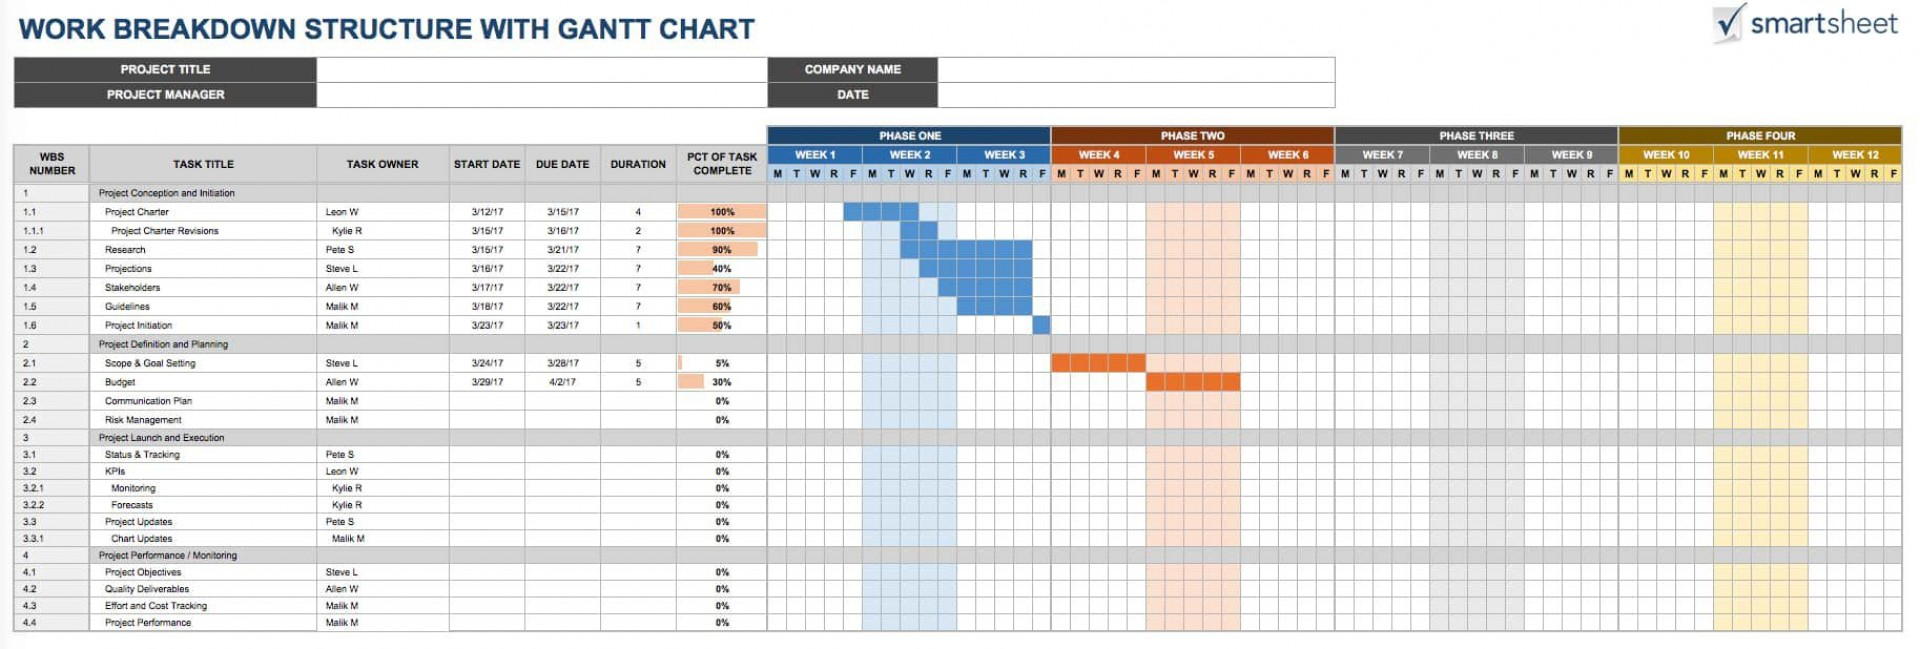 004 Fascinating Multiple Project Tracking Template Excel Design  Free Download Xl Analysistabs-multiple-project-tracking-template-excel-2003-version1920